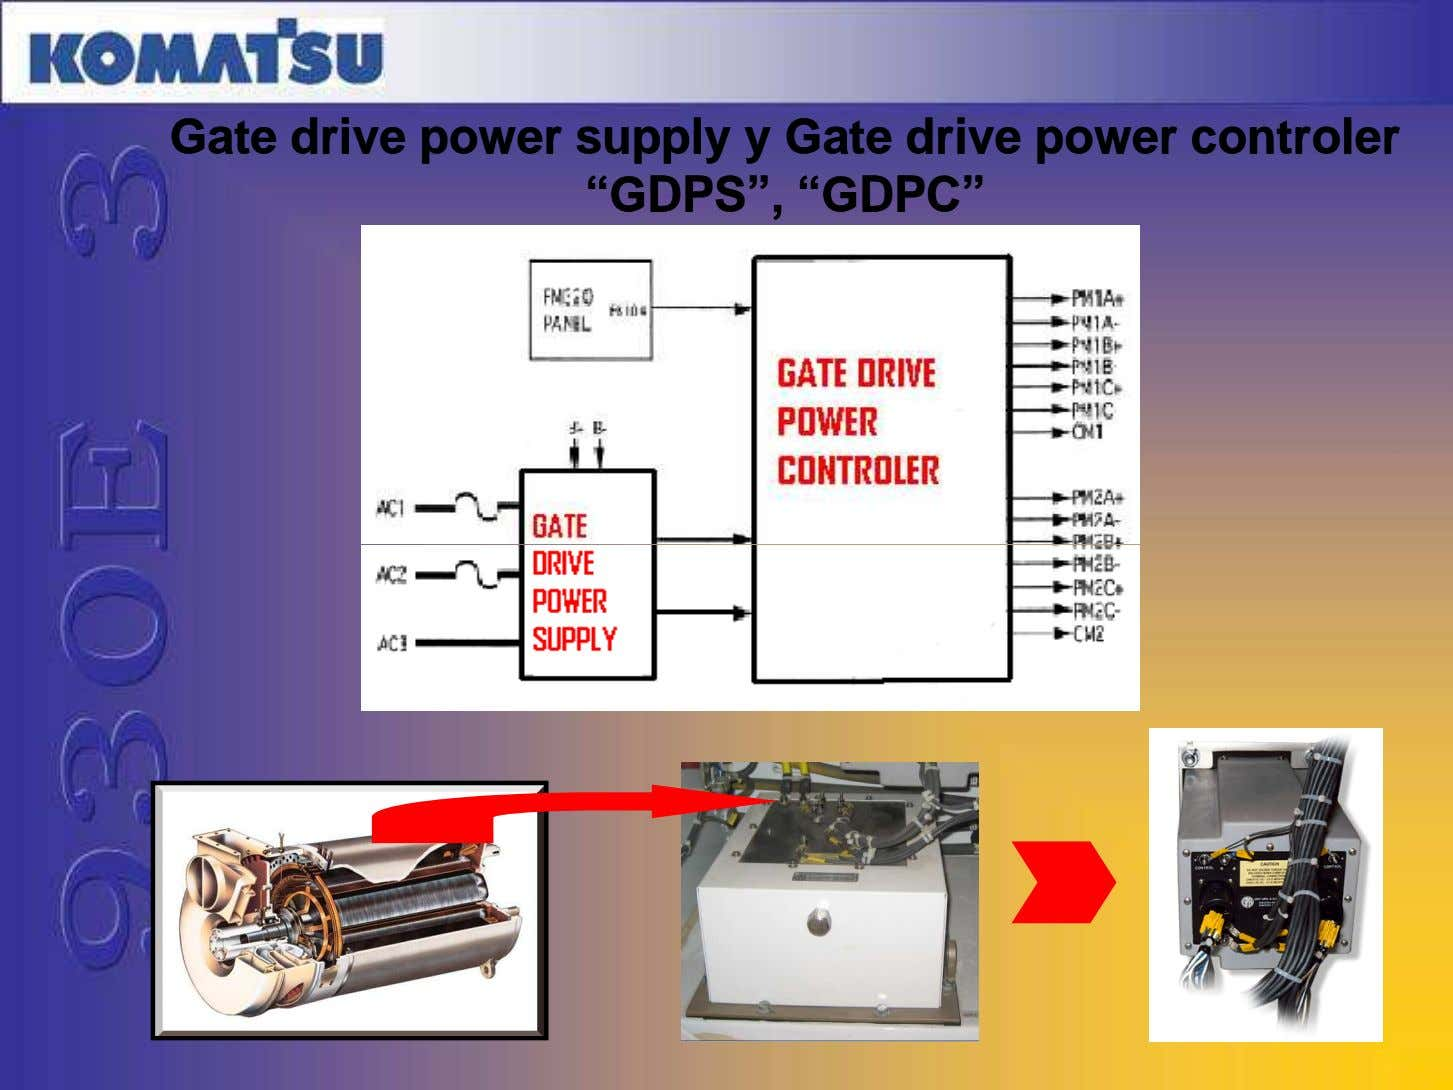 "GateGate drivedrive powerpower supplysupply yy GateGate drivedrive powerpower controlecontrolerr ""GDPS"",""GDPS"","